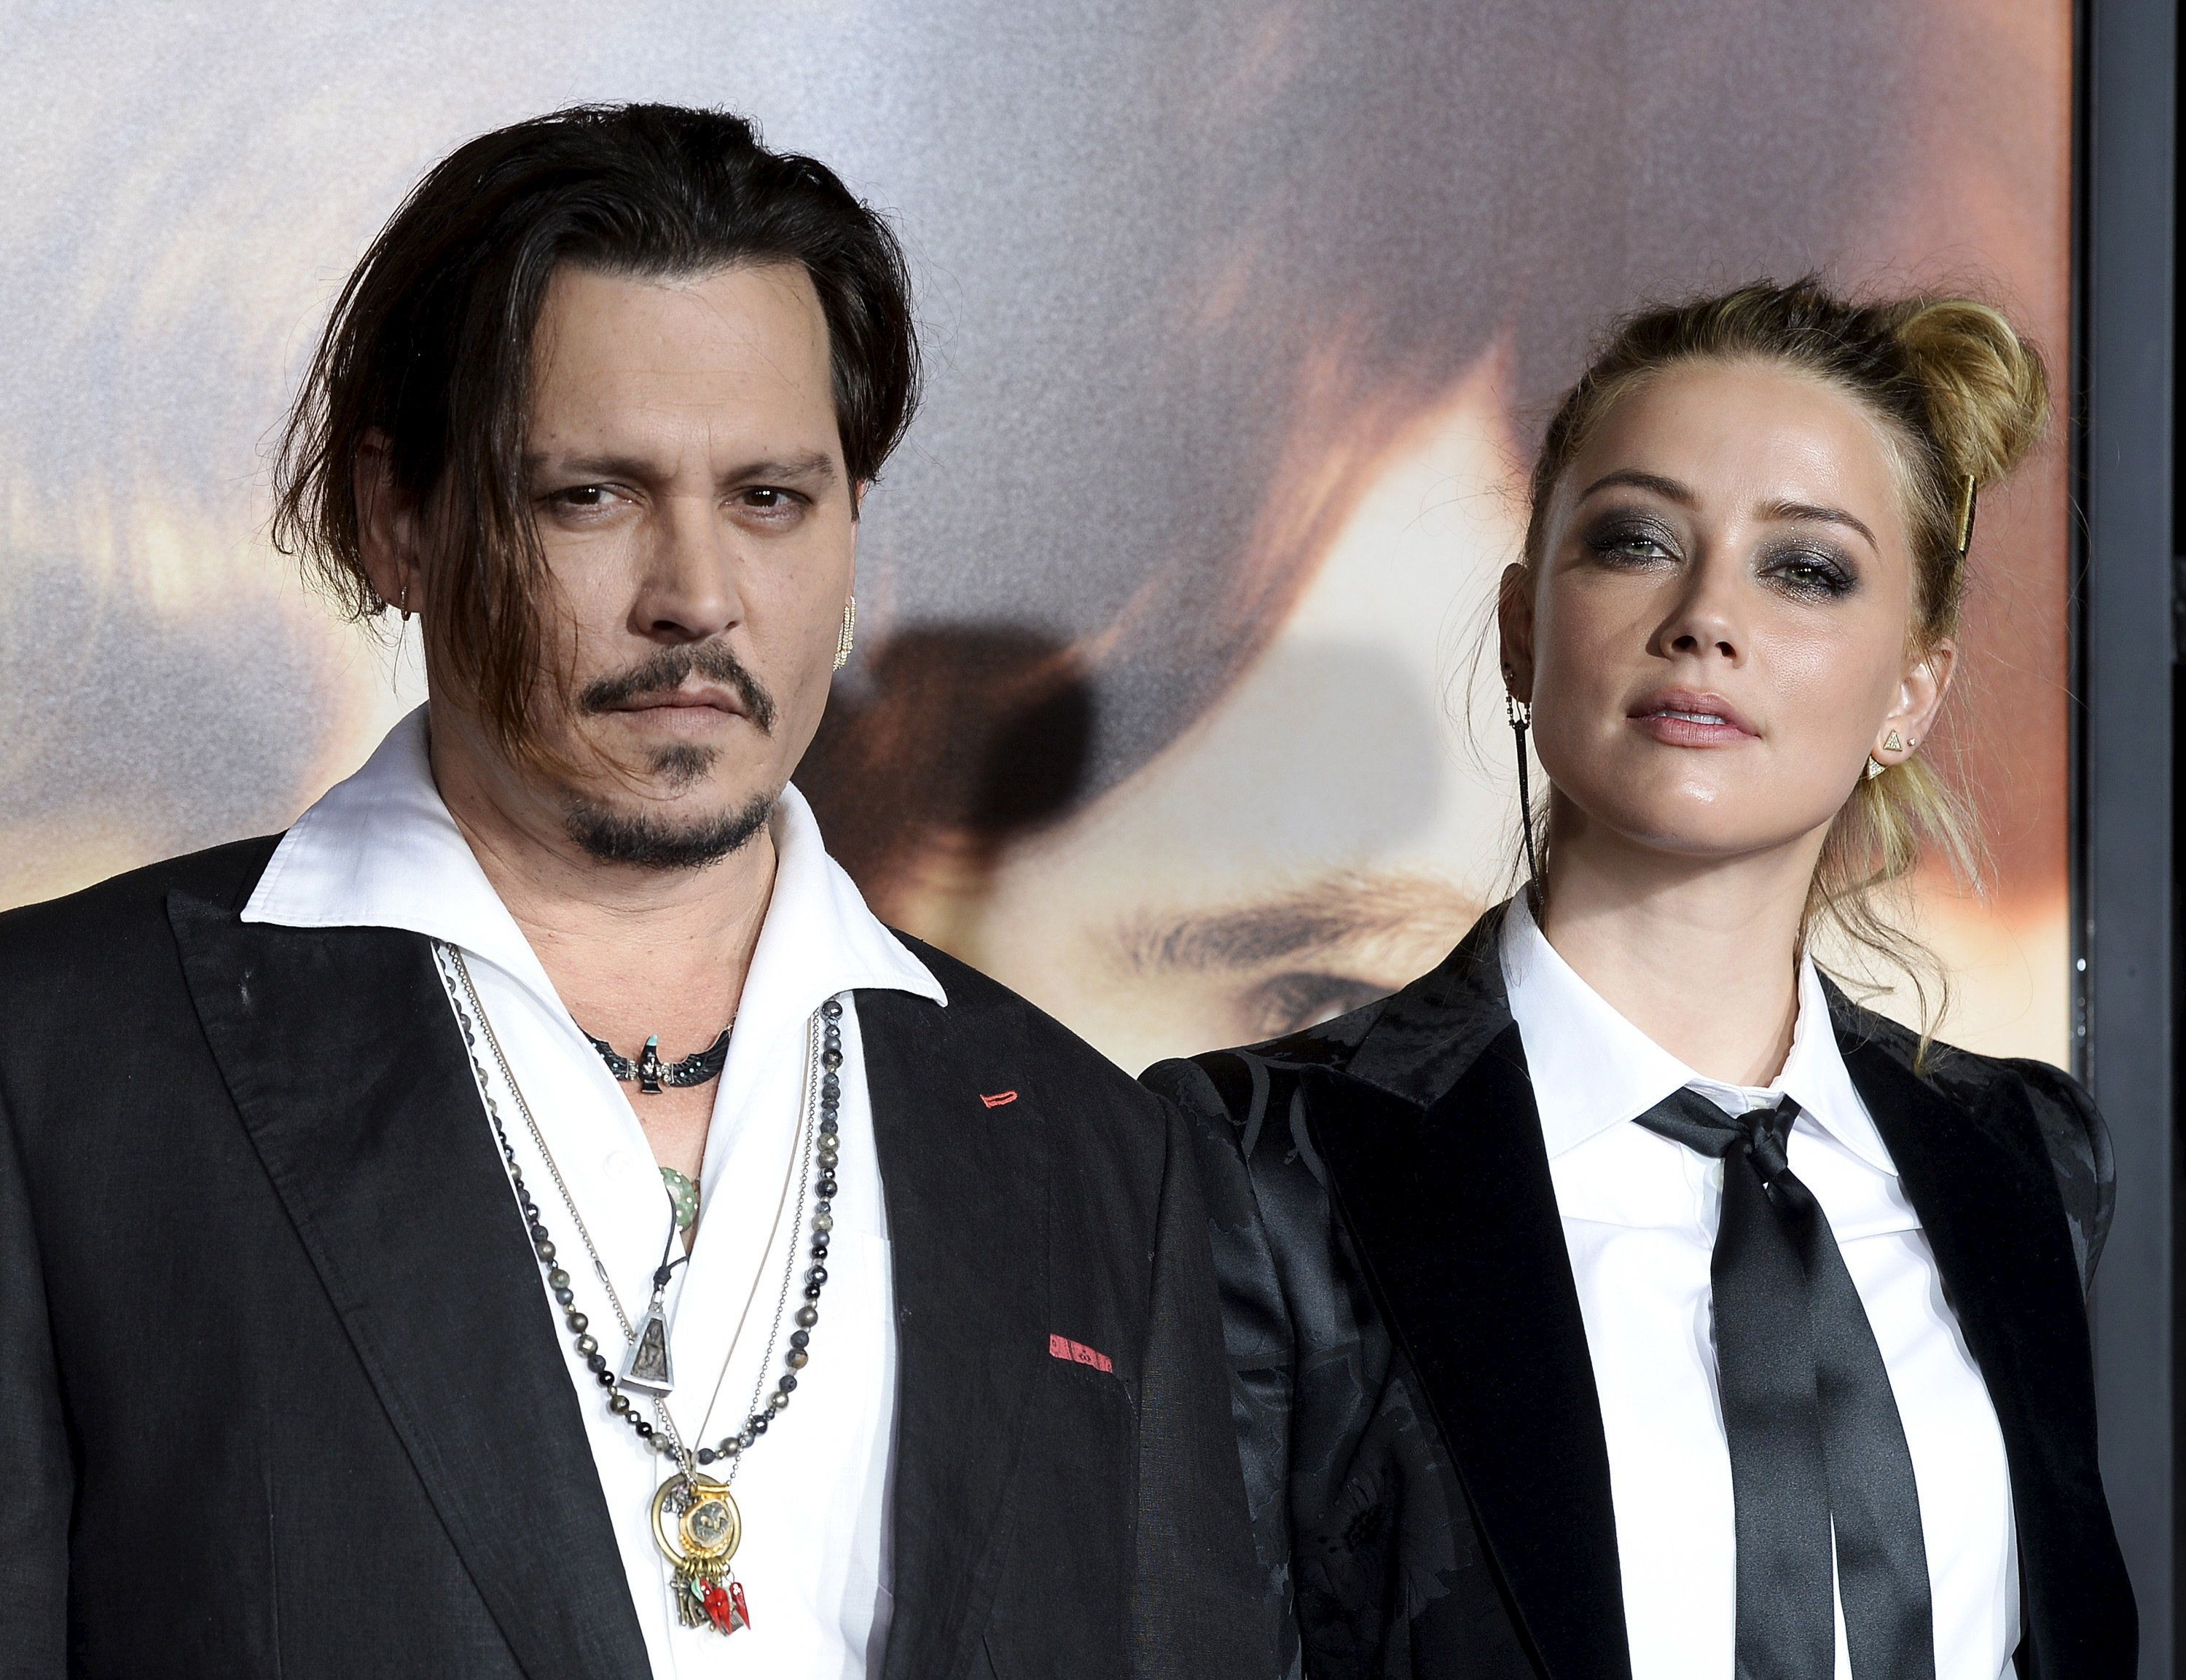 Depp and Heard at the premiere of